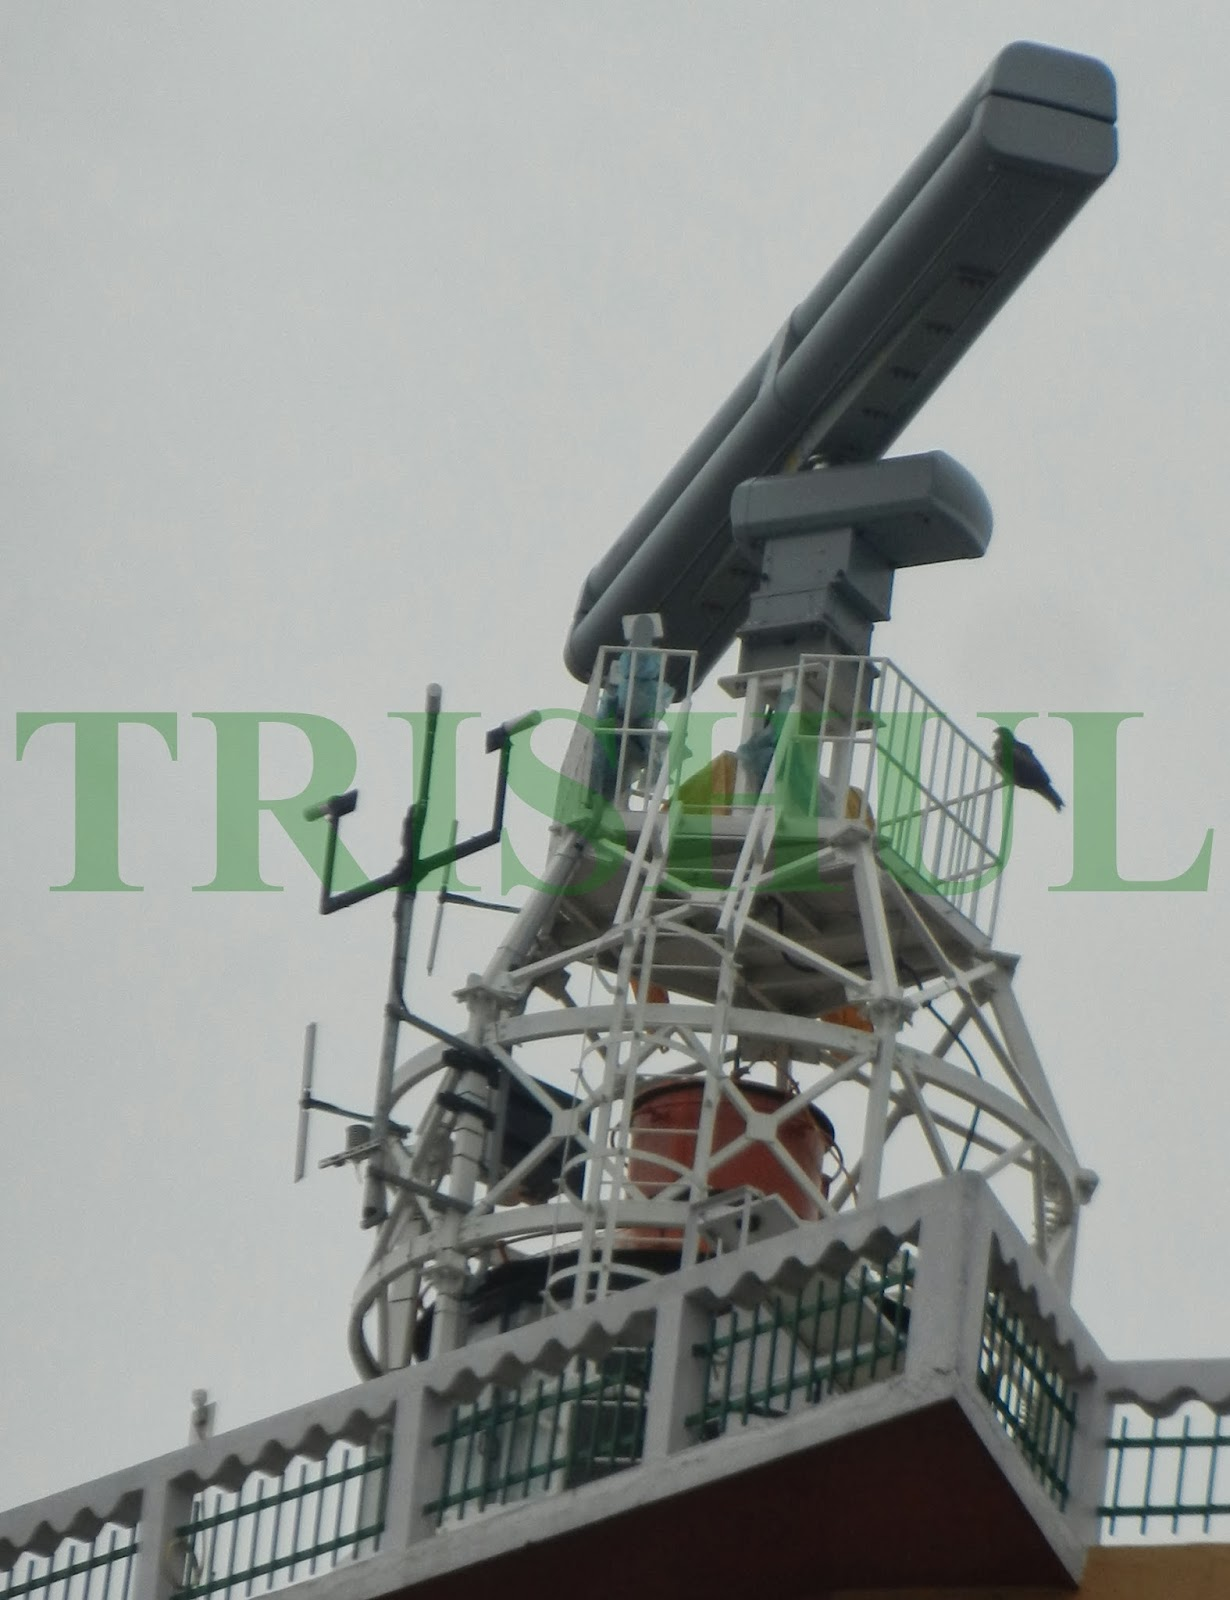 TRISHUL: Naval and Maritime EXPO 2013